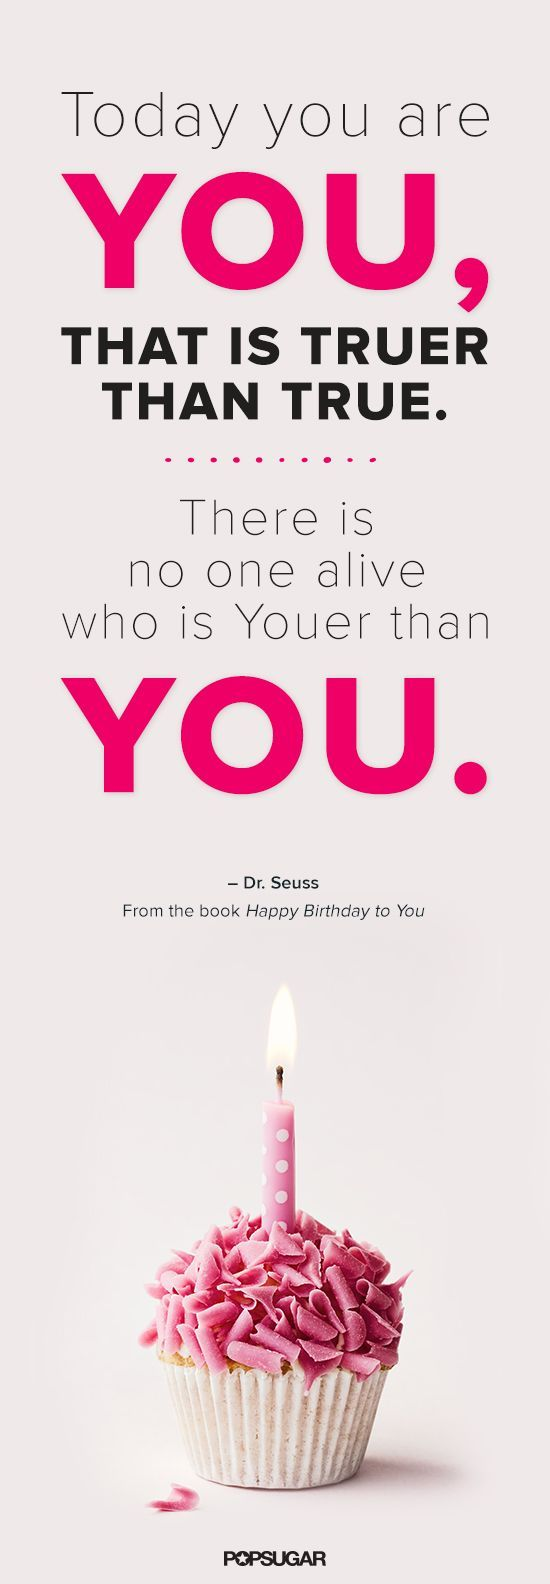 23 of Our AllTime Favorite Kids Book Quotes – 23 Birthday Cards